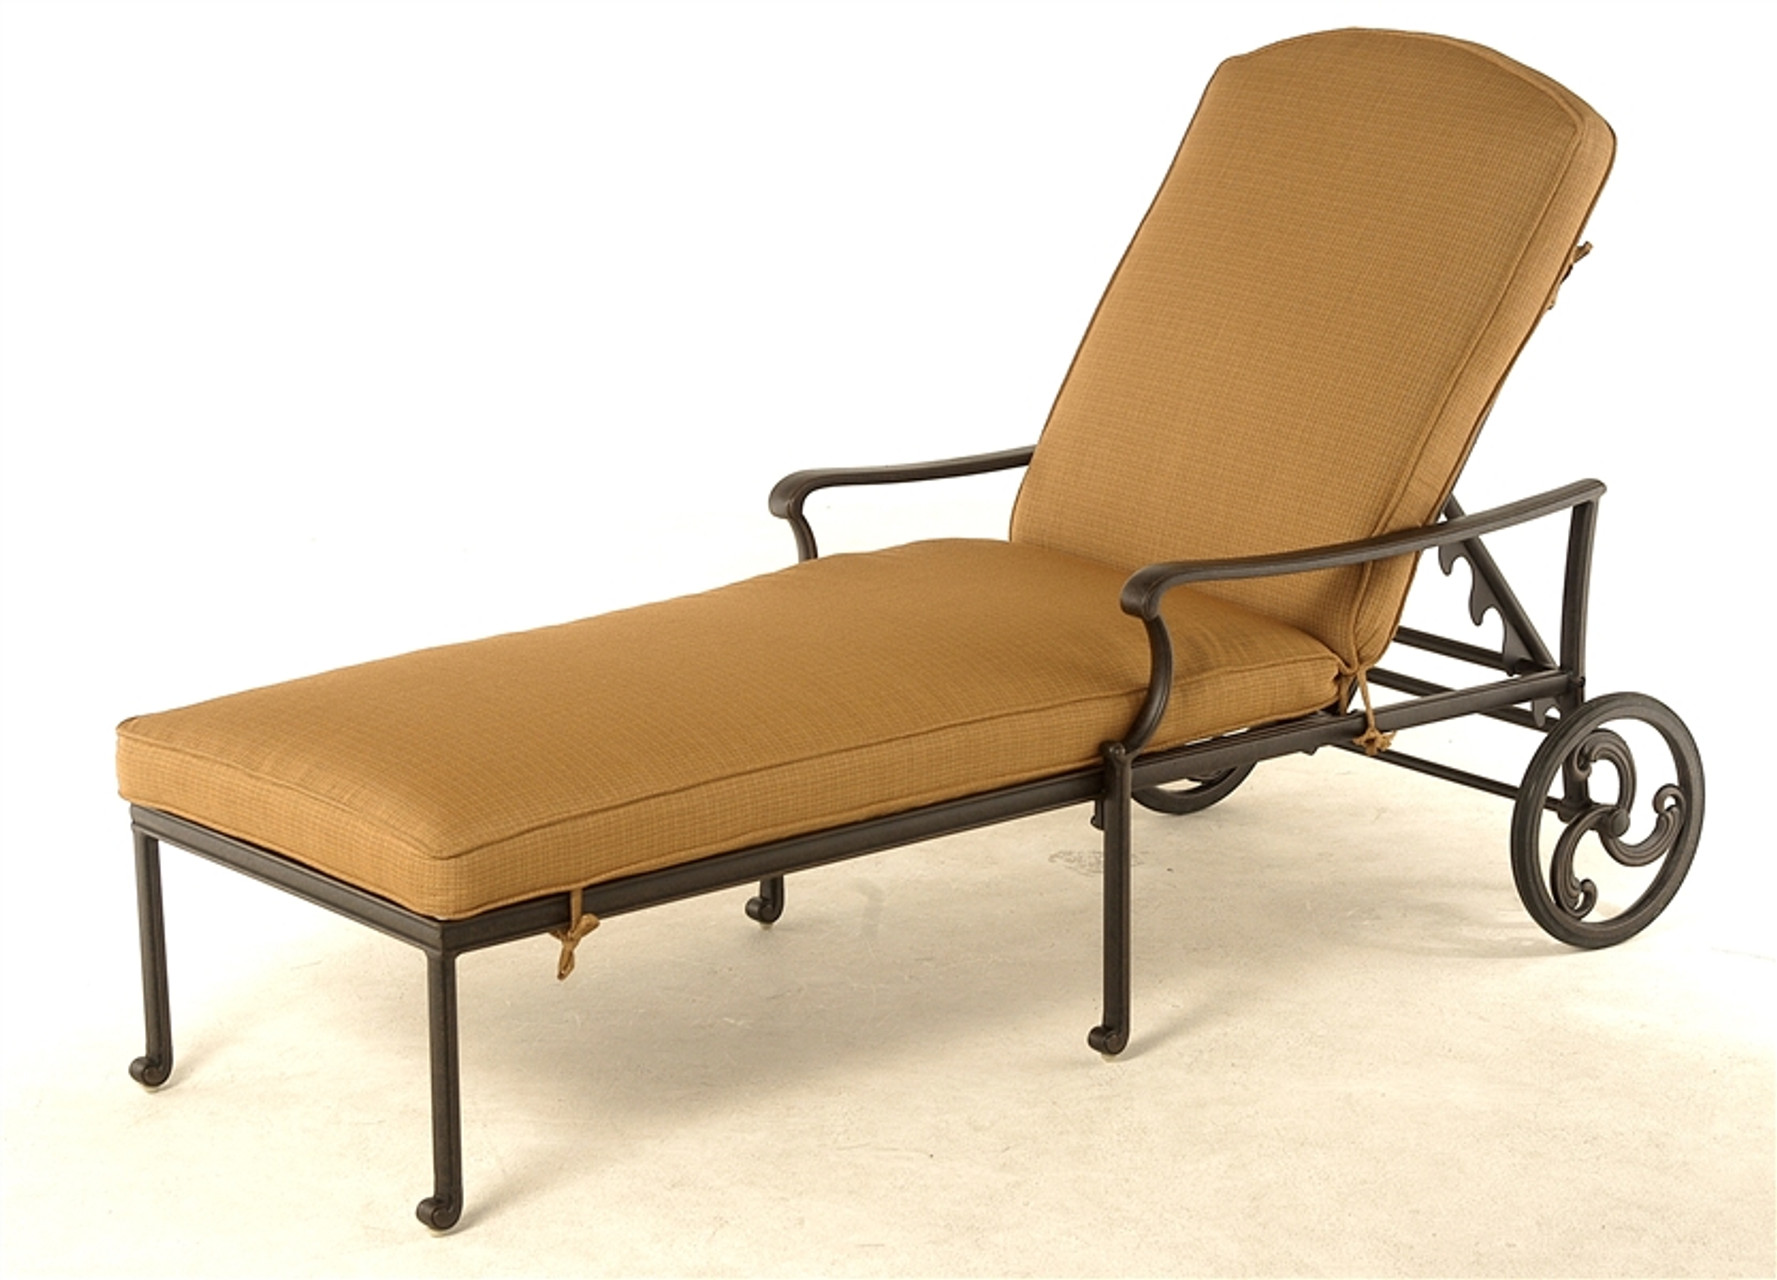 Outdoor Chaise Lounge.Hanamint Bella Outdoor Chaise Lounge